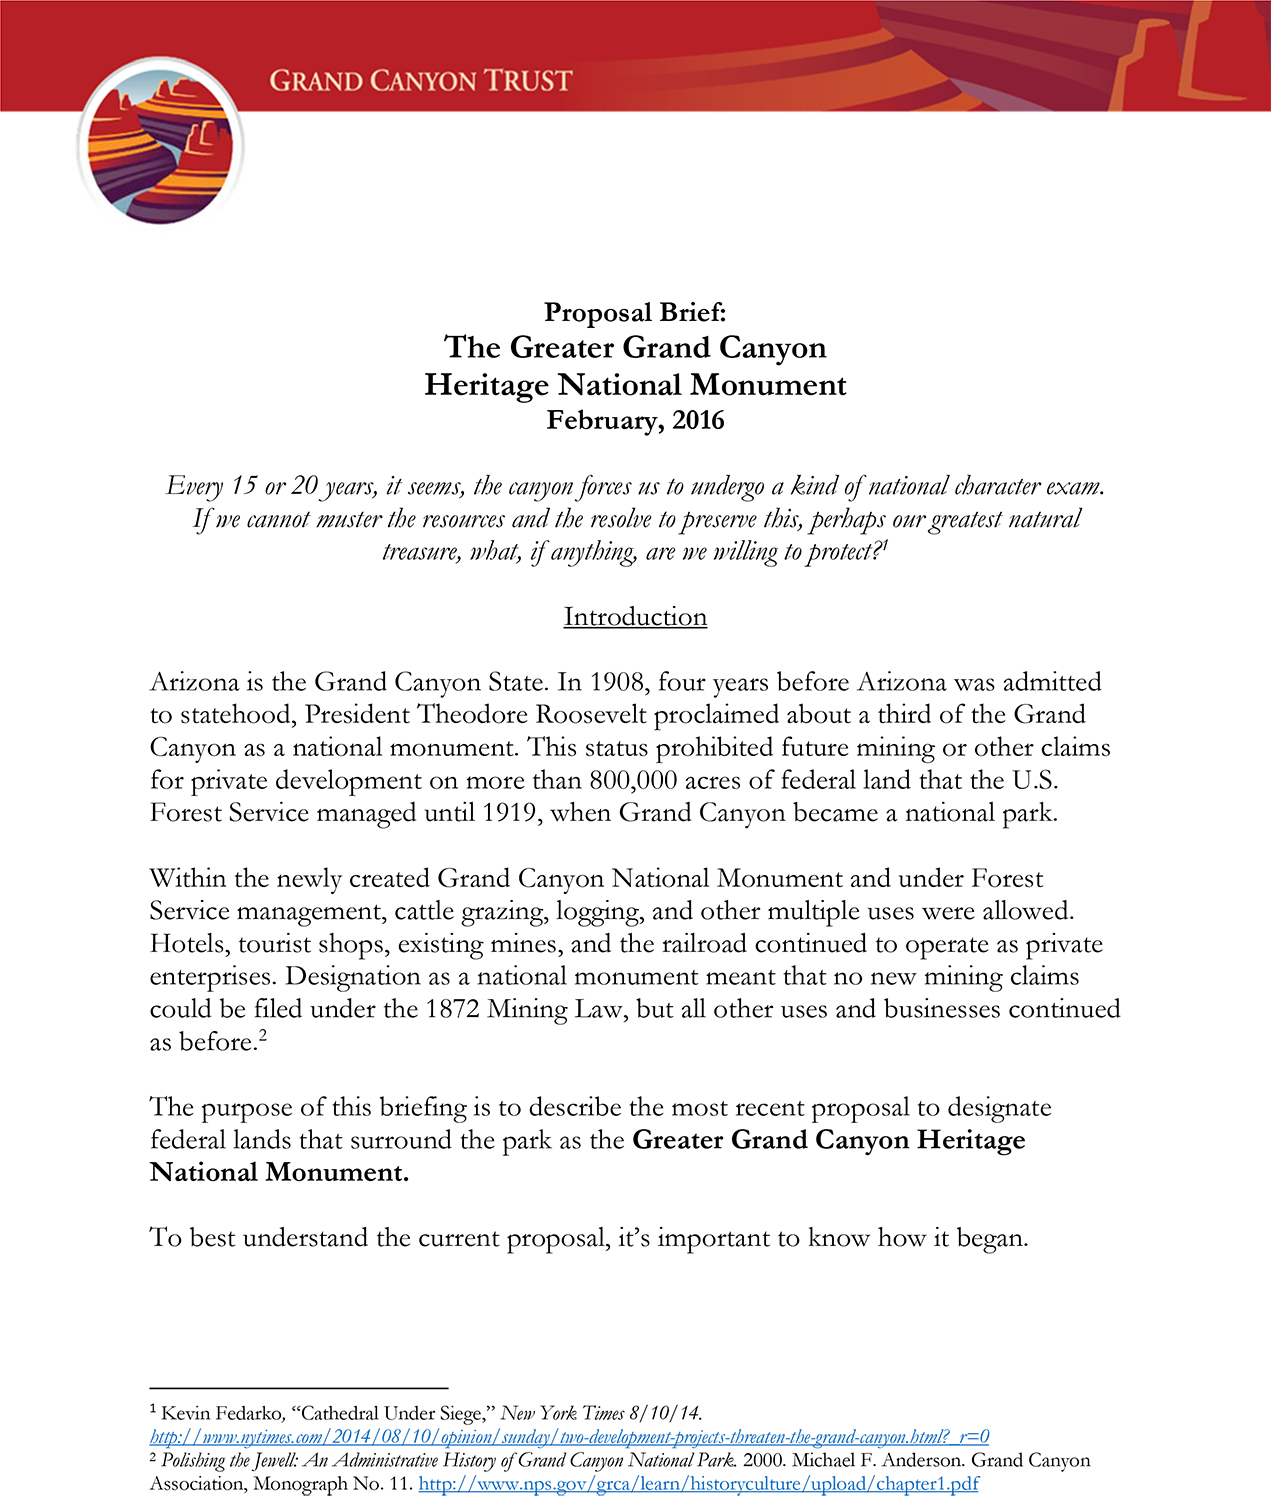 Greater Grand Canyon Heritage National Monument proposal brief